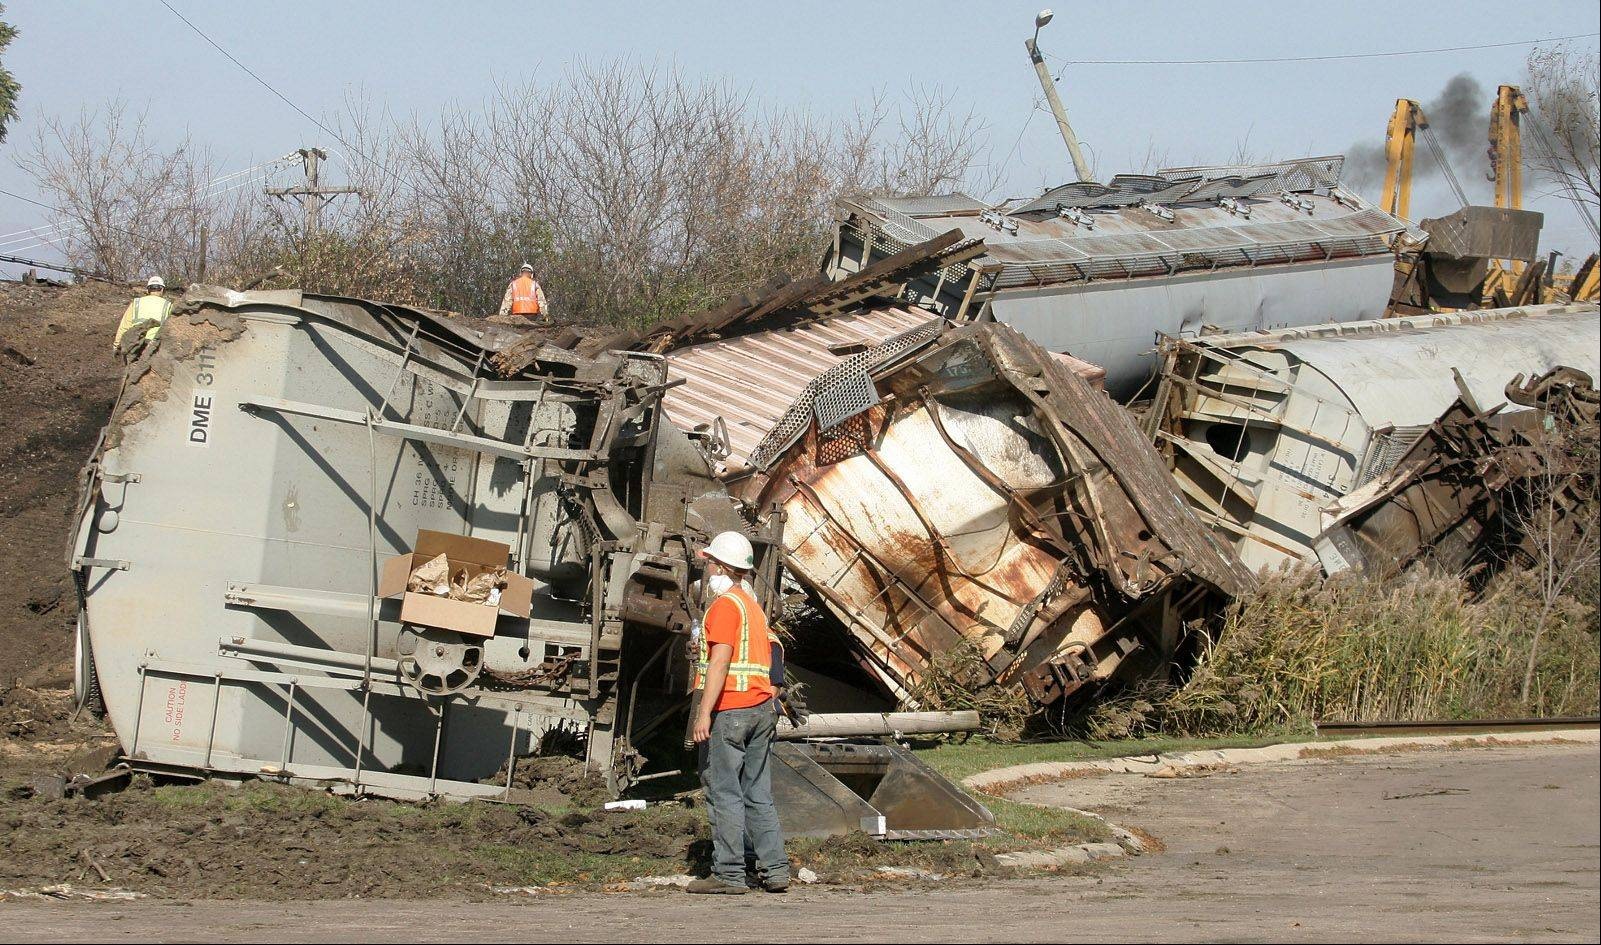 With freight train derailments occurring on main lines an average of 13 times a year in Chicago and the suburbs, local leaders don't want to play the odds that a derailment could lead to a hazardous materials spill. Tank cars, they say, should be reinforced to help keep that from happening.